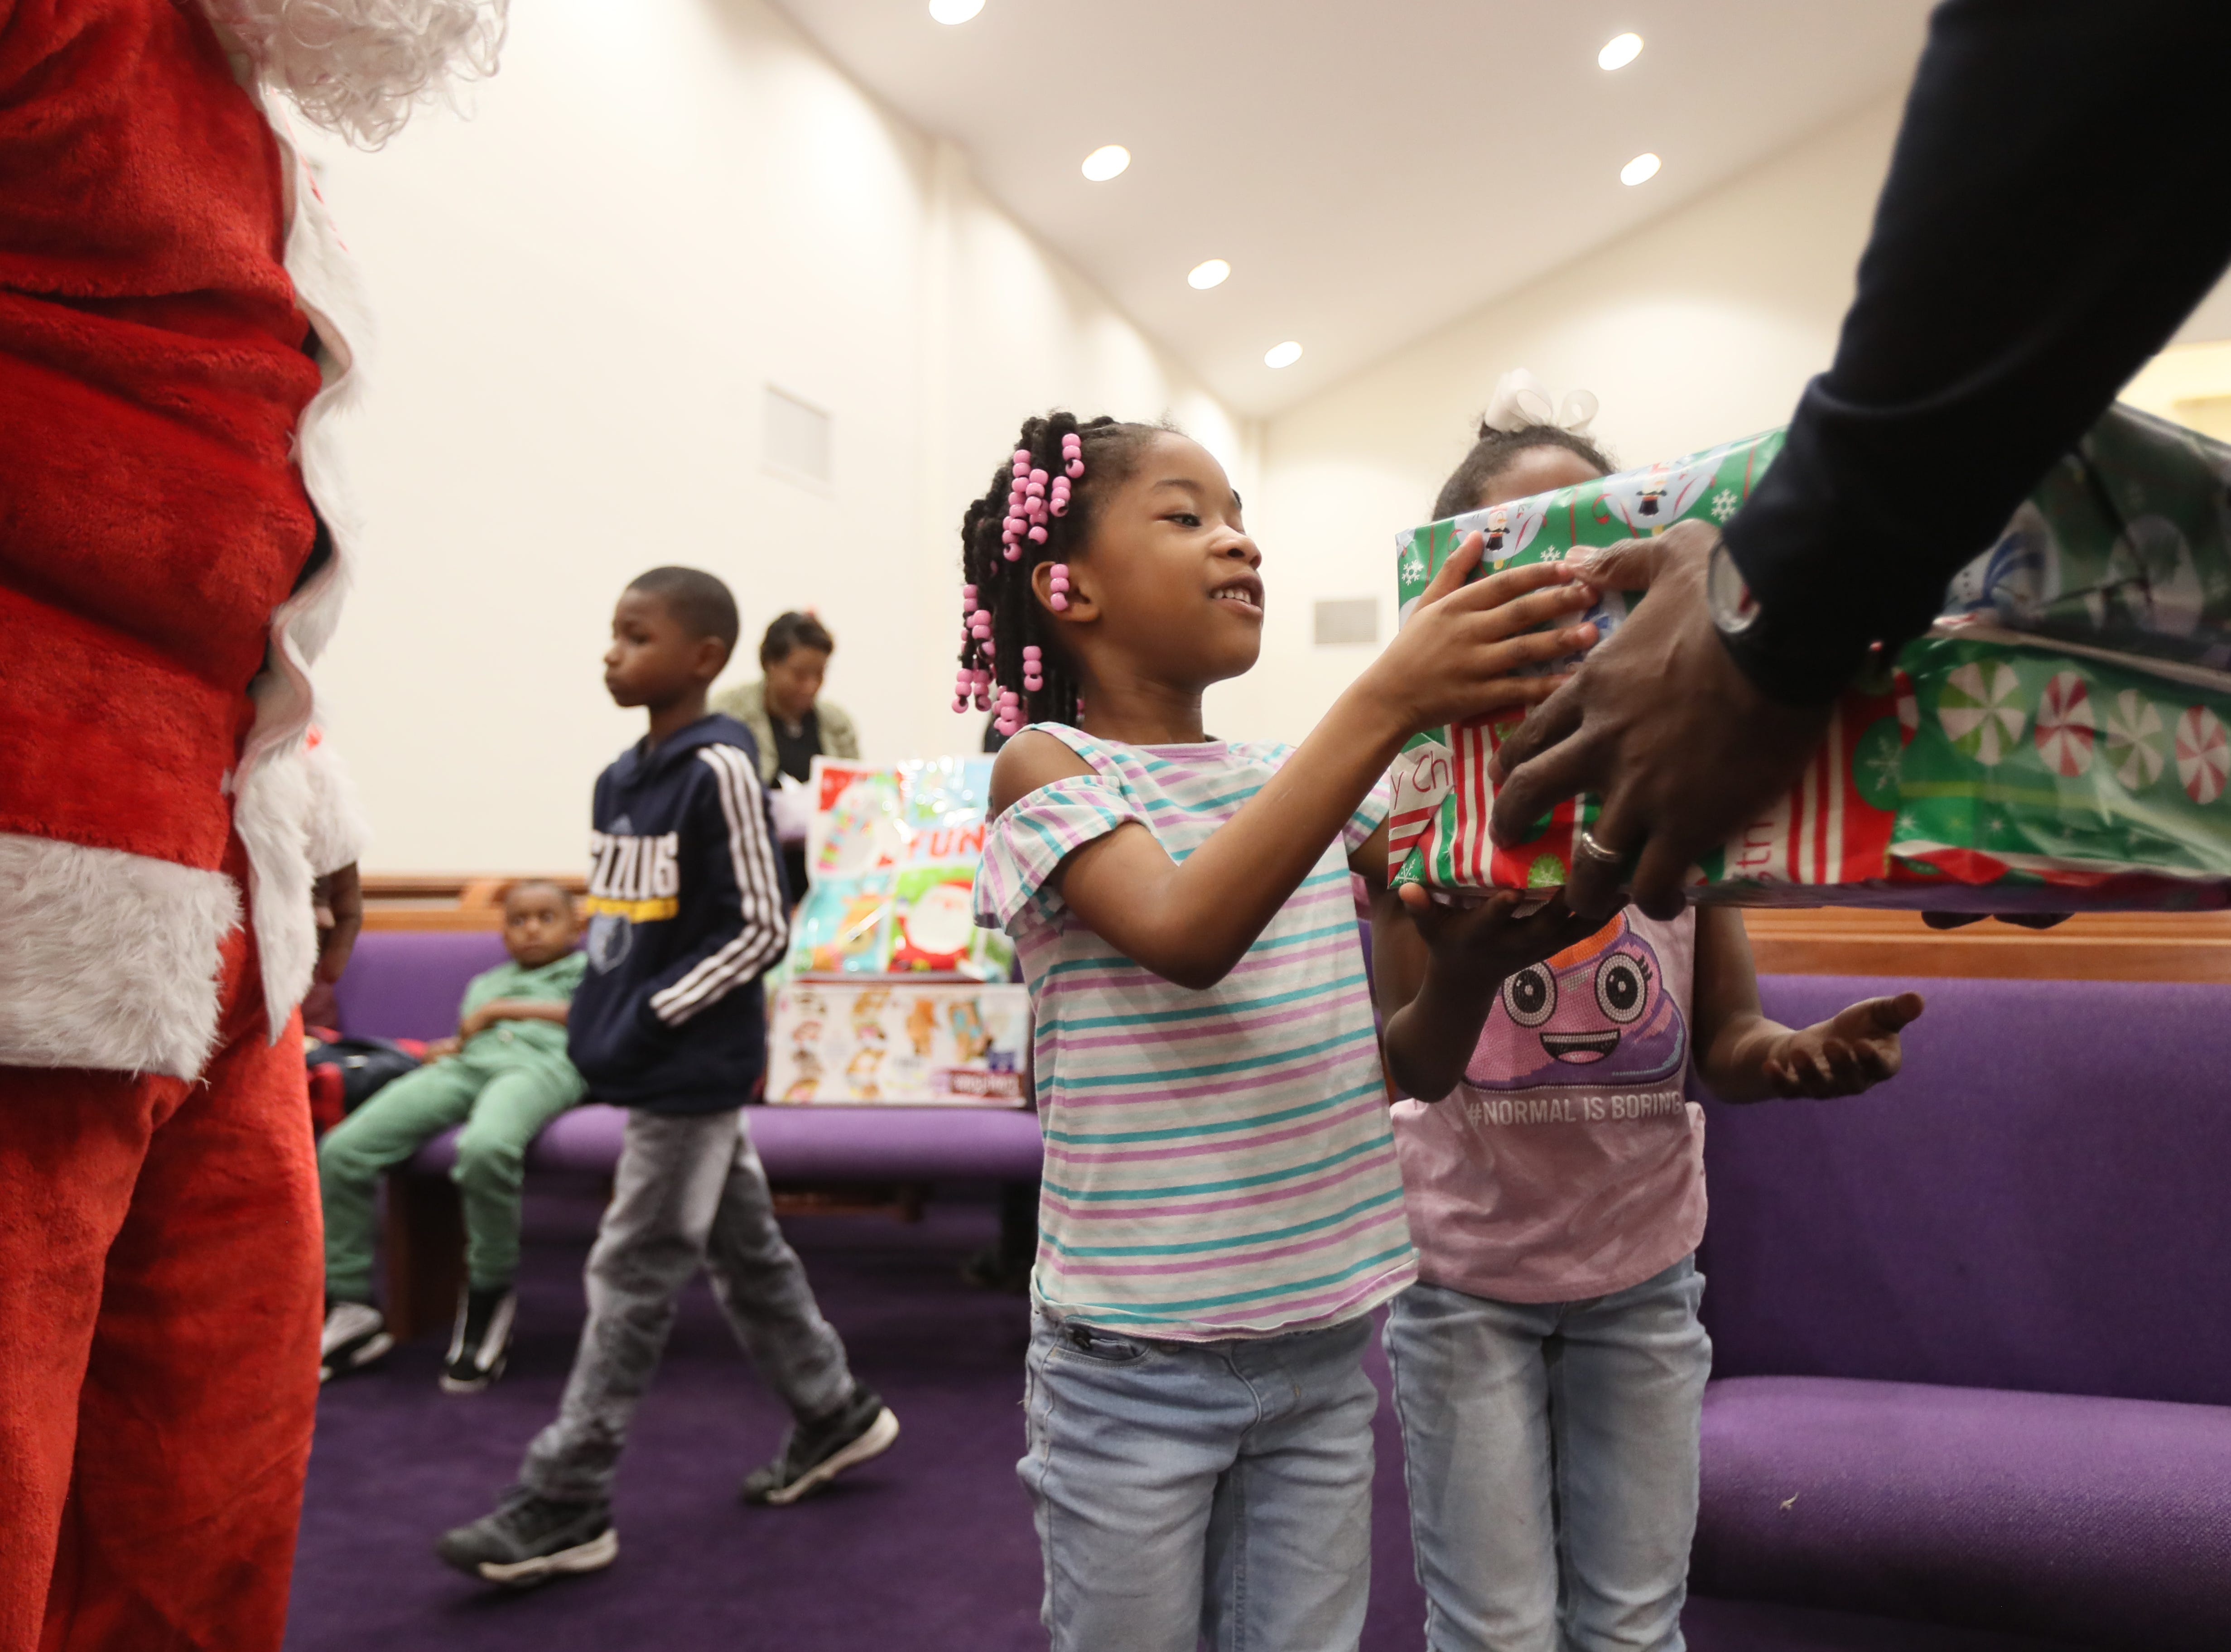 Children receive presents from the MPD's Community Outreach Program as they bring holiday cheer in the name of gifts and food to families at Grace Missionary Baptist Church on Thursday, Dec. 20, 2018.